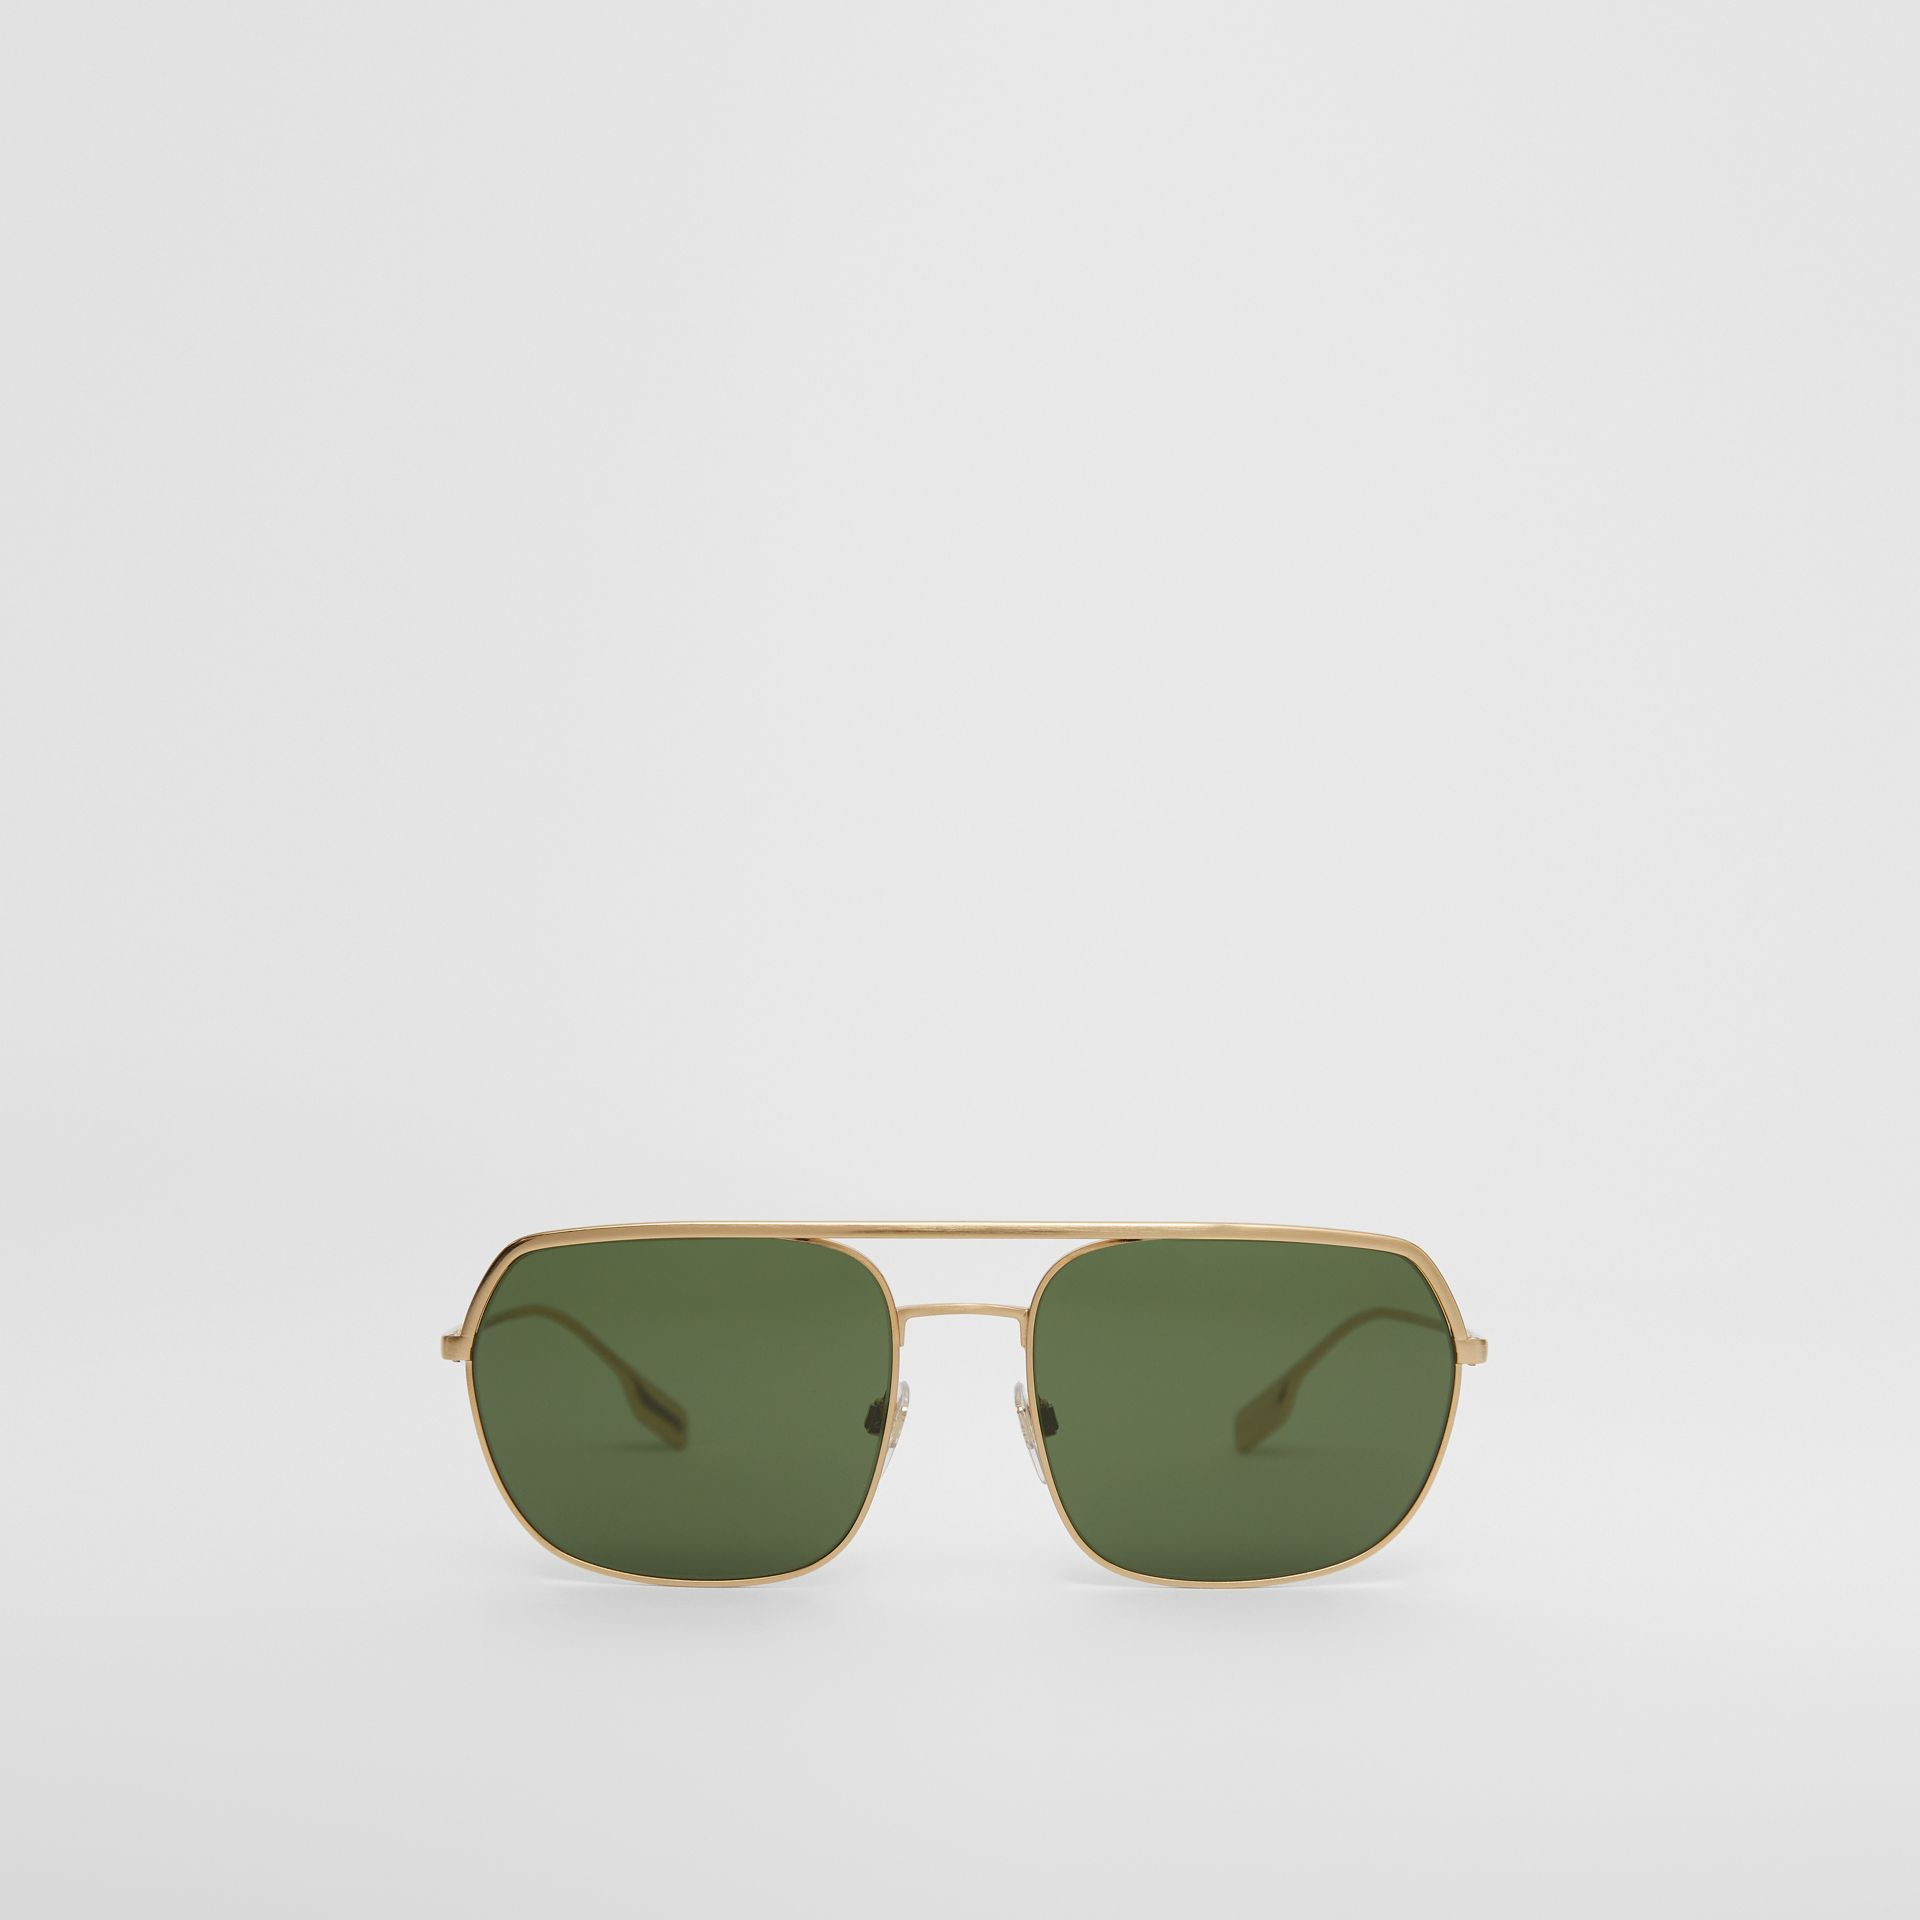 Square Pilot Sunglasses in Vintage Brushed Gold - Men | Burberry United Kingdom - gallery image 0